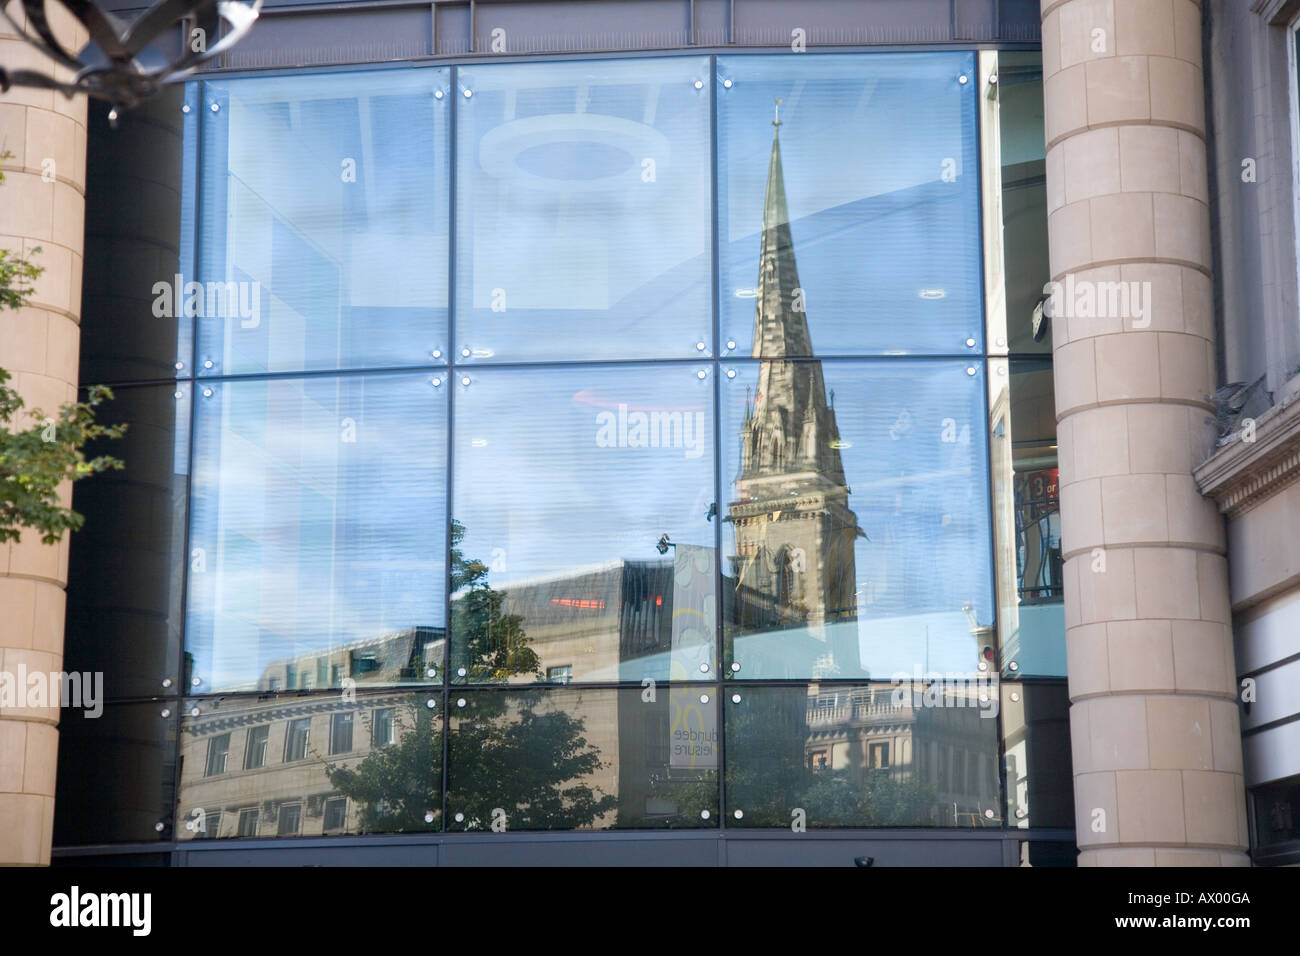 Dundee's Overgate - church reflection store window - Stock Image